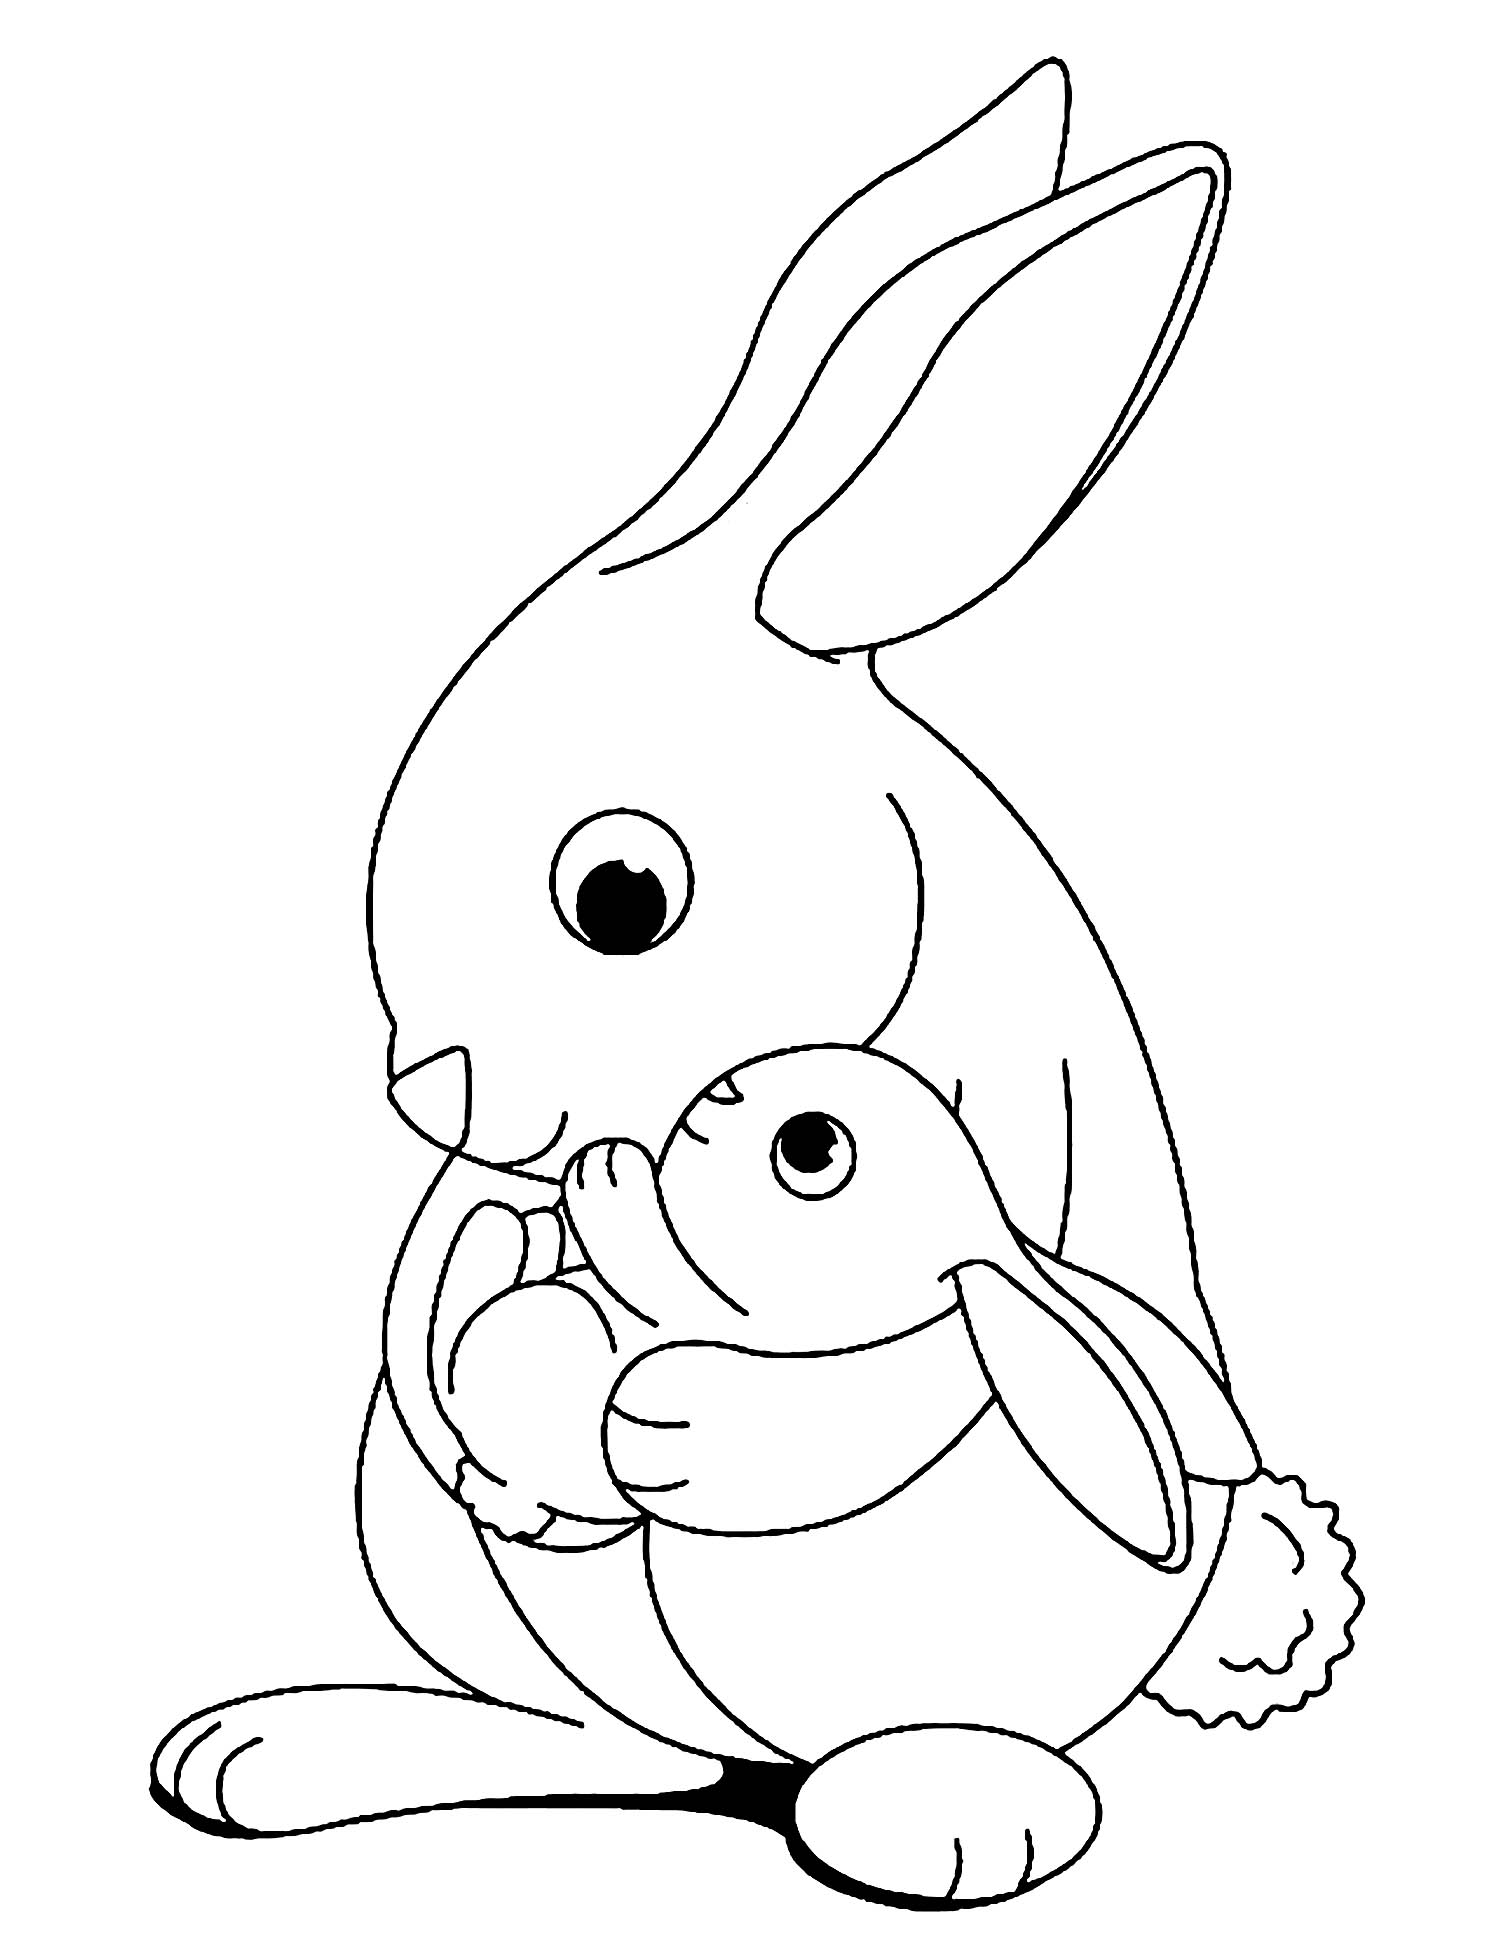 bunny coloring picture free printable rabbit coloring pages for kids coloring picture bunny